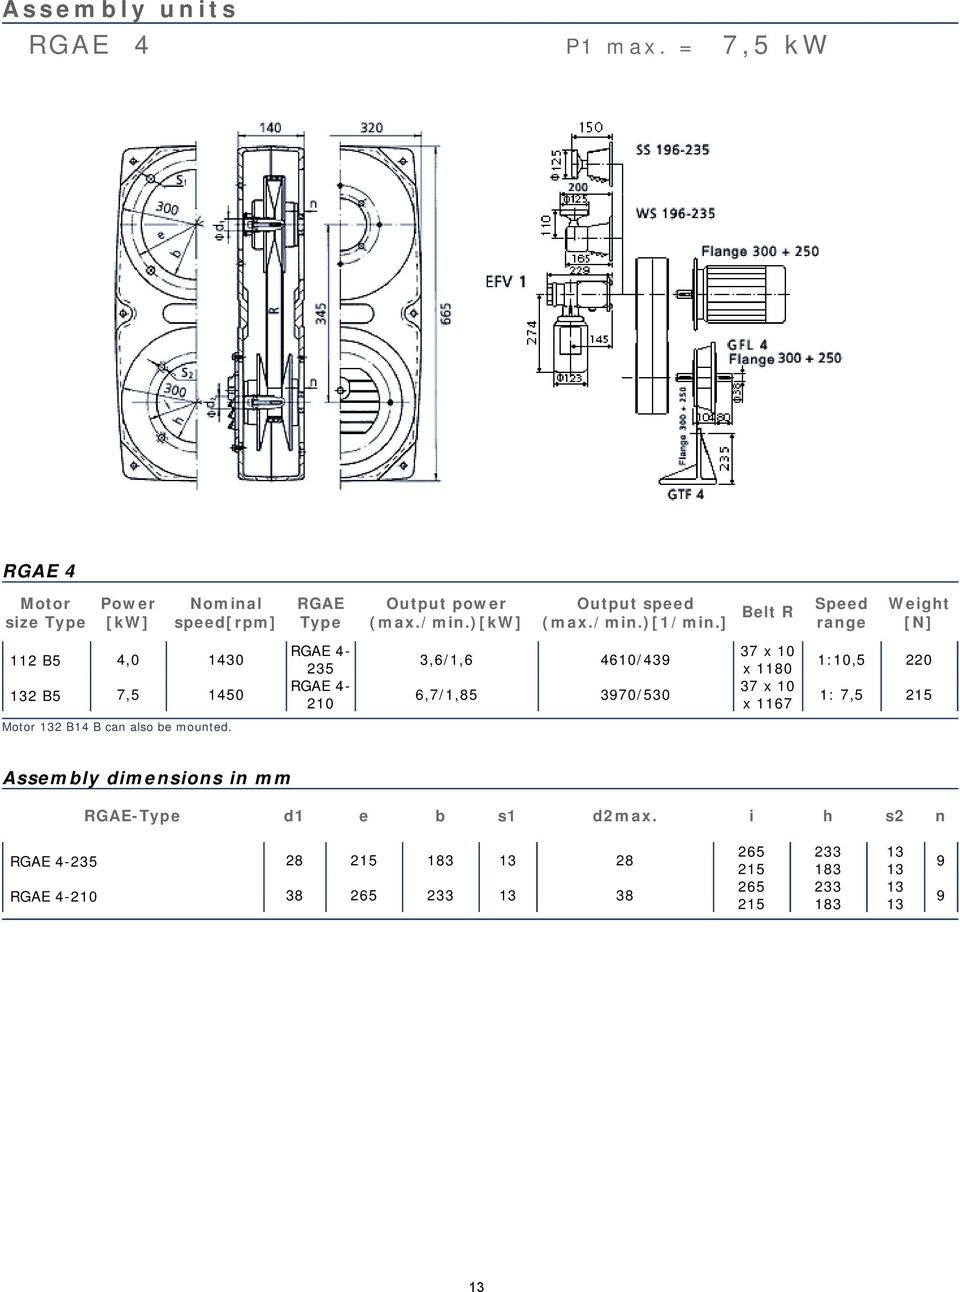 Berges Variable Drive Units Pdf 24v Vr6 Engine Diagram Rgae Type 4 235 210 Output Power Max